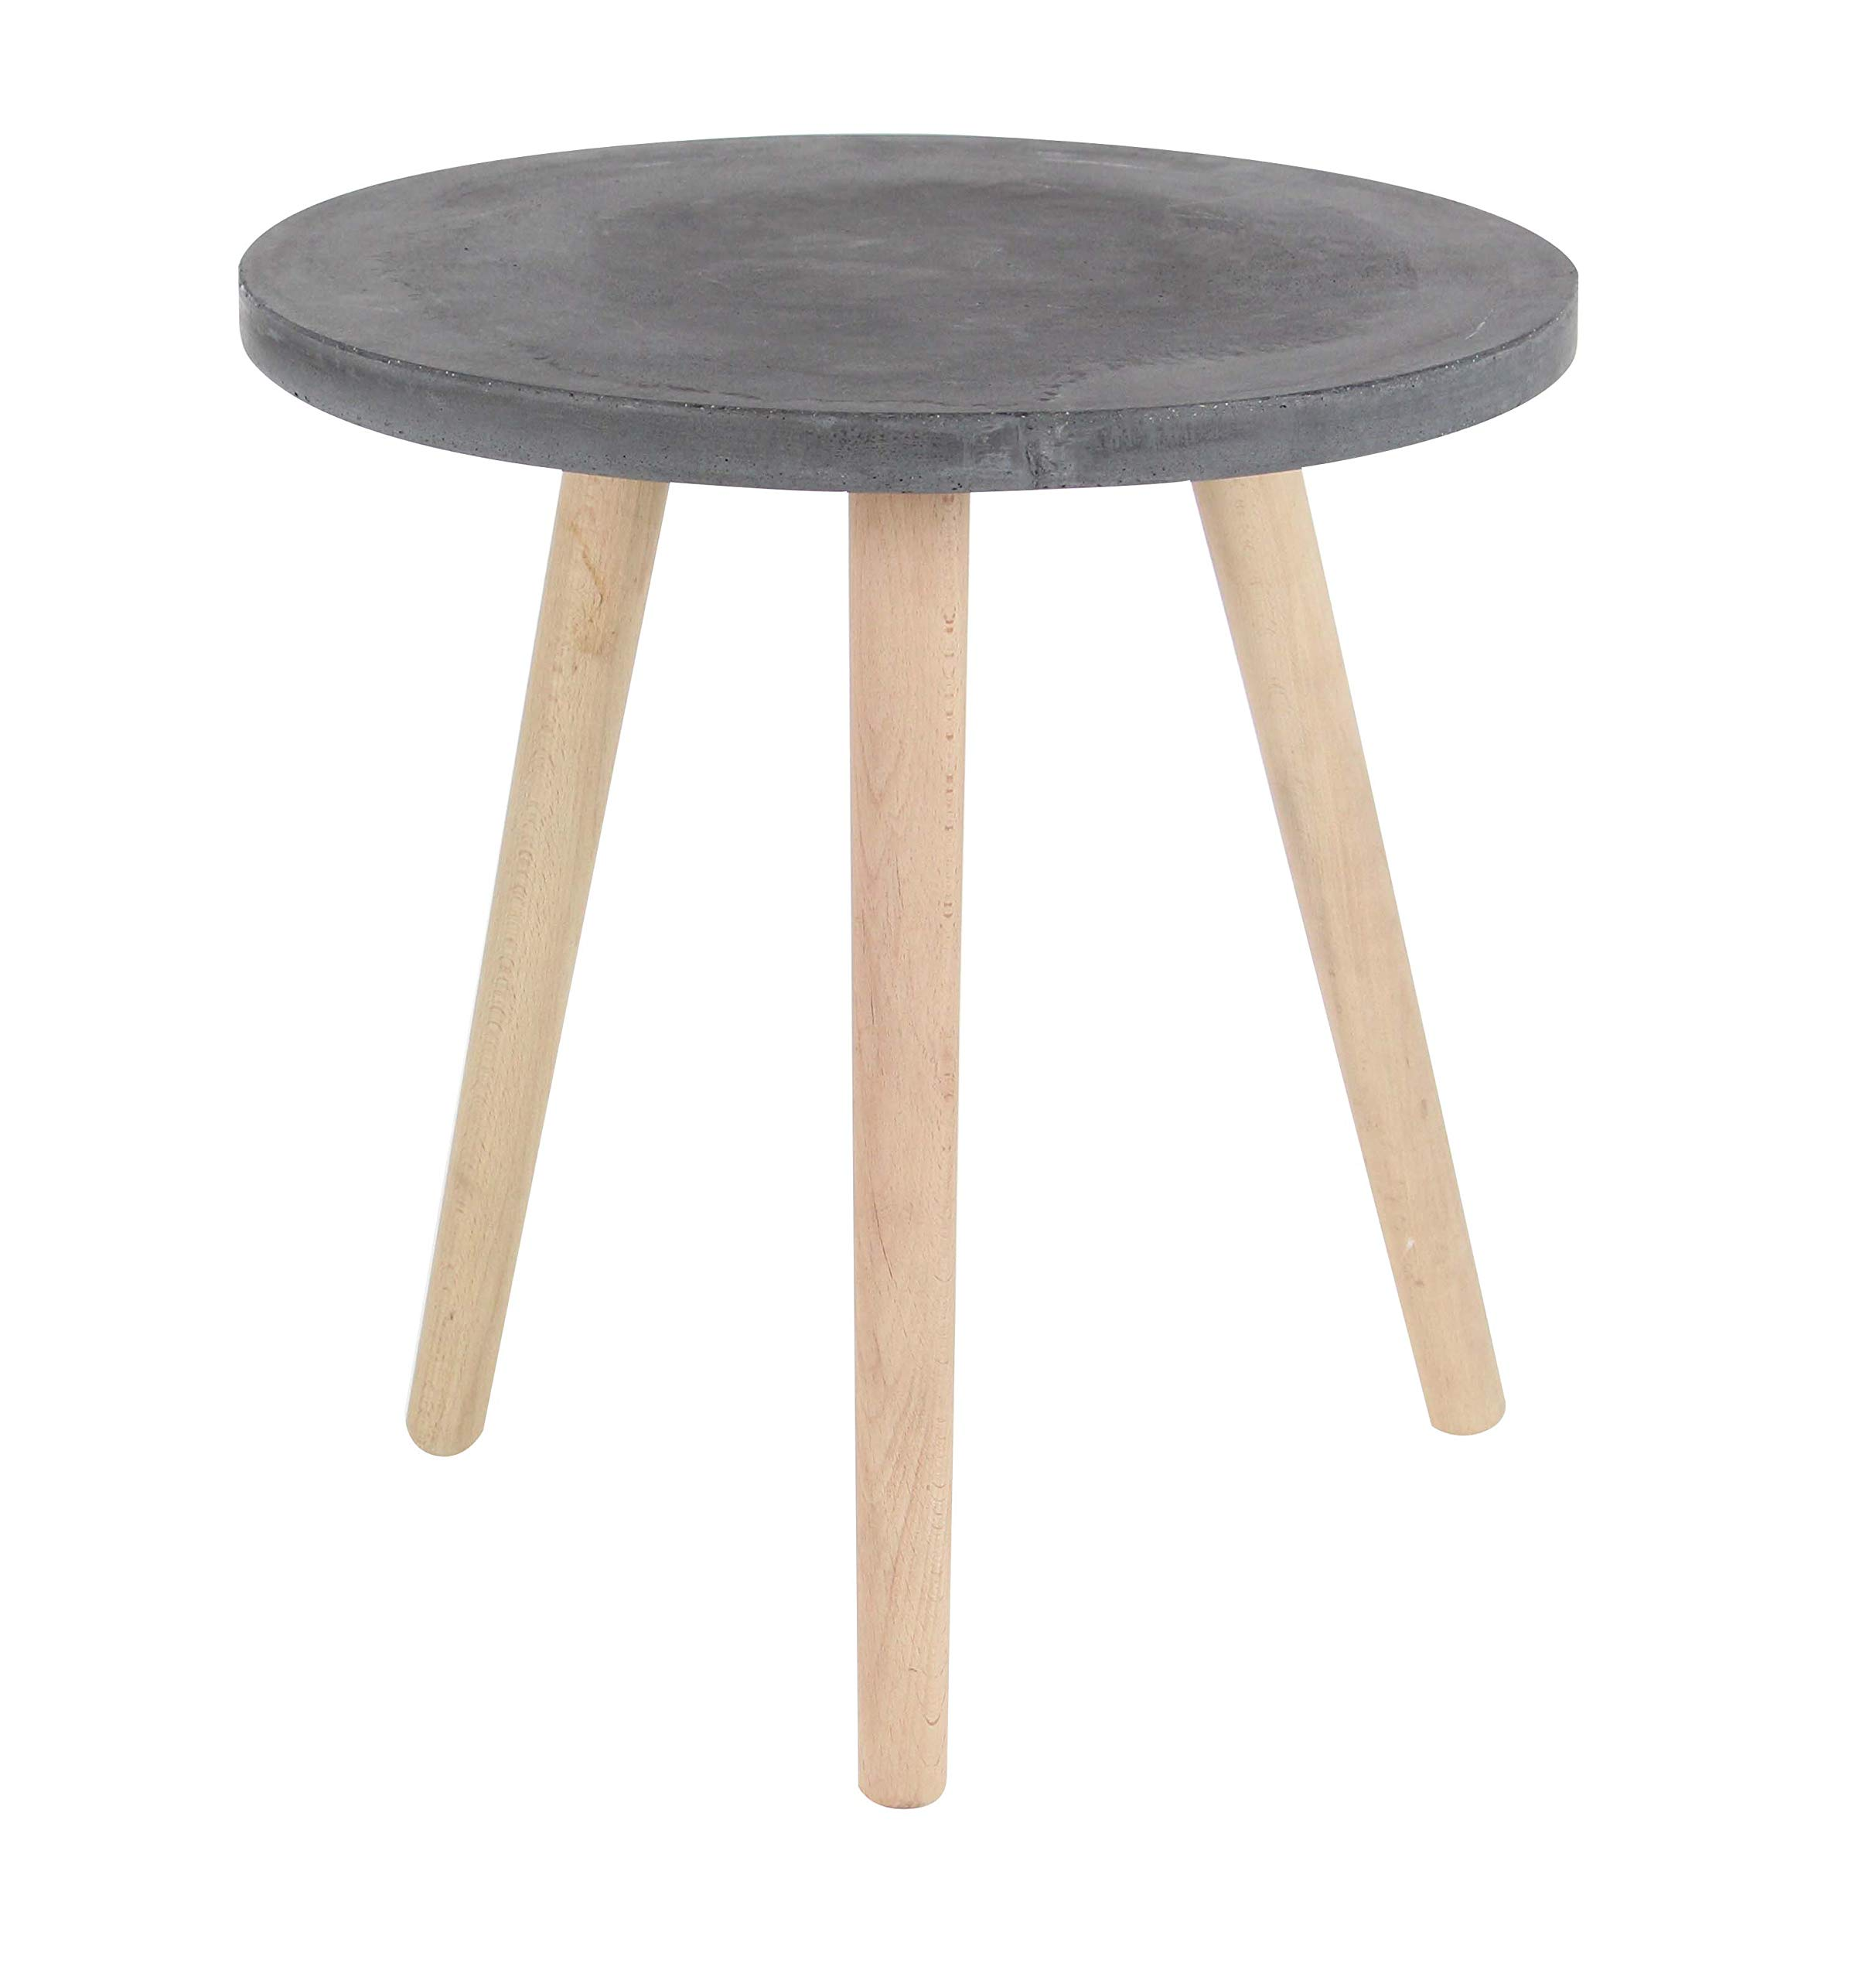 Deco 79 Wood and Fiber Clay Table Black/Brown by Deco 79